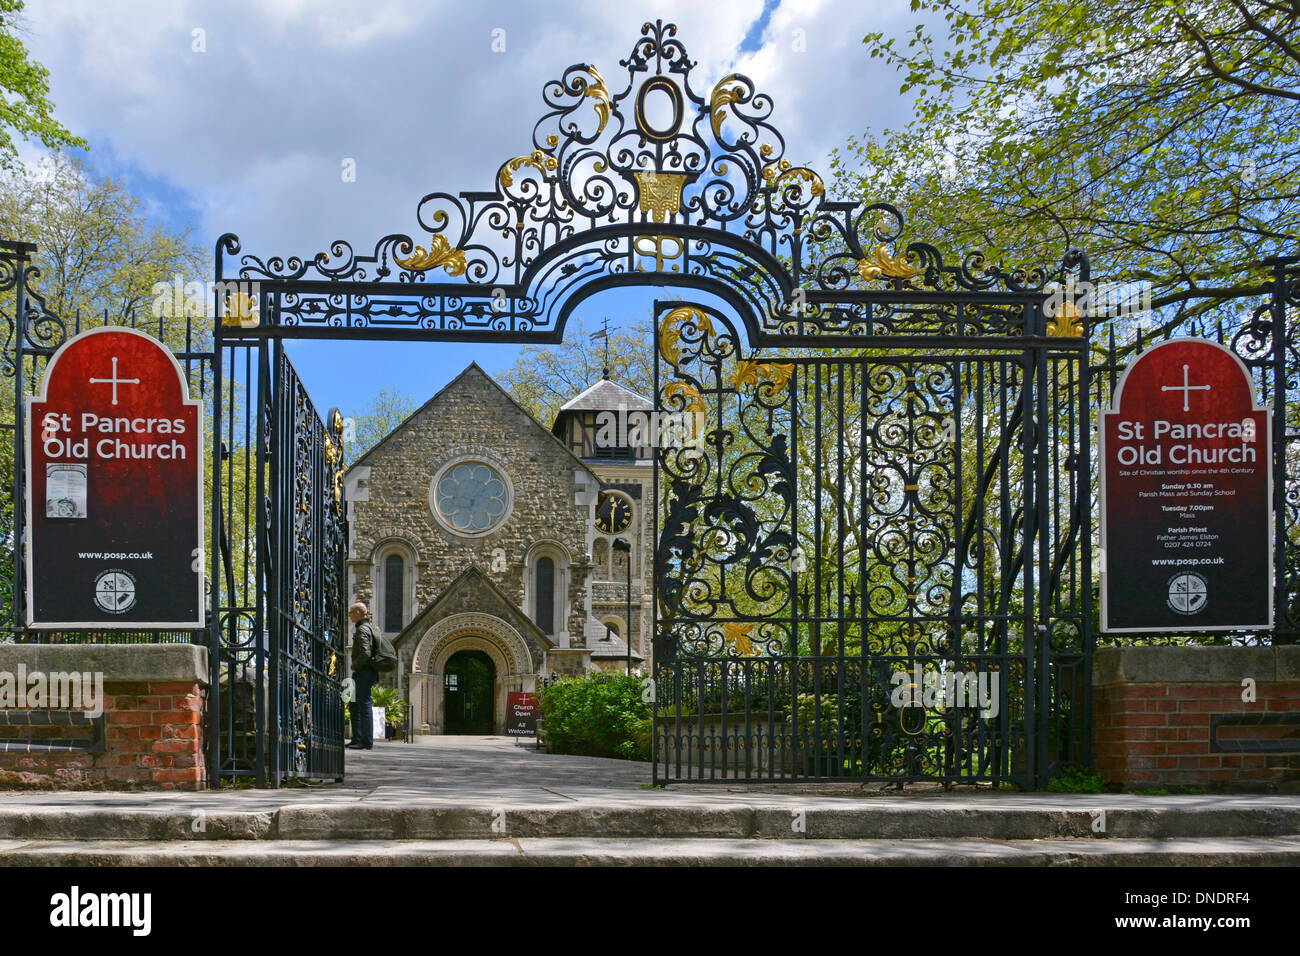 Ornamental iron gates to the church and churchyard of St Pancras Old Church - Stock Image